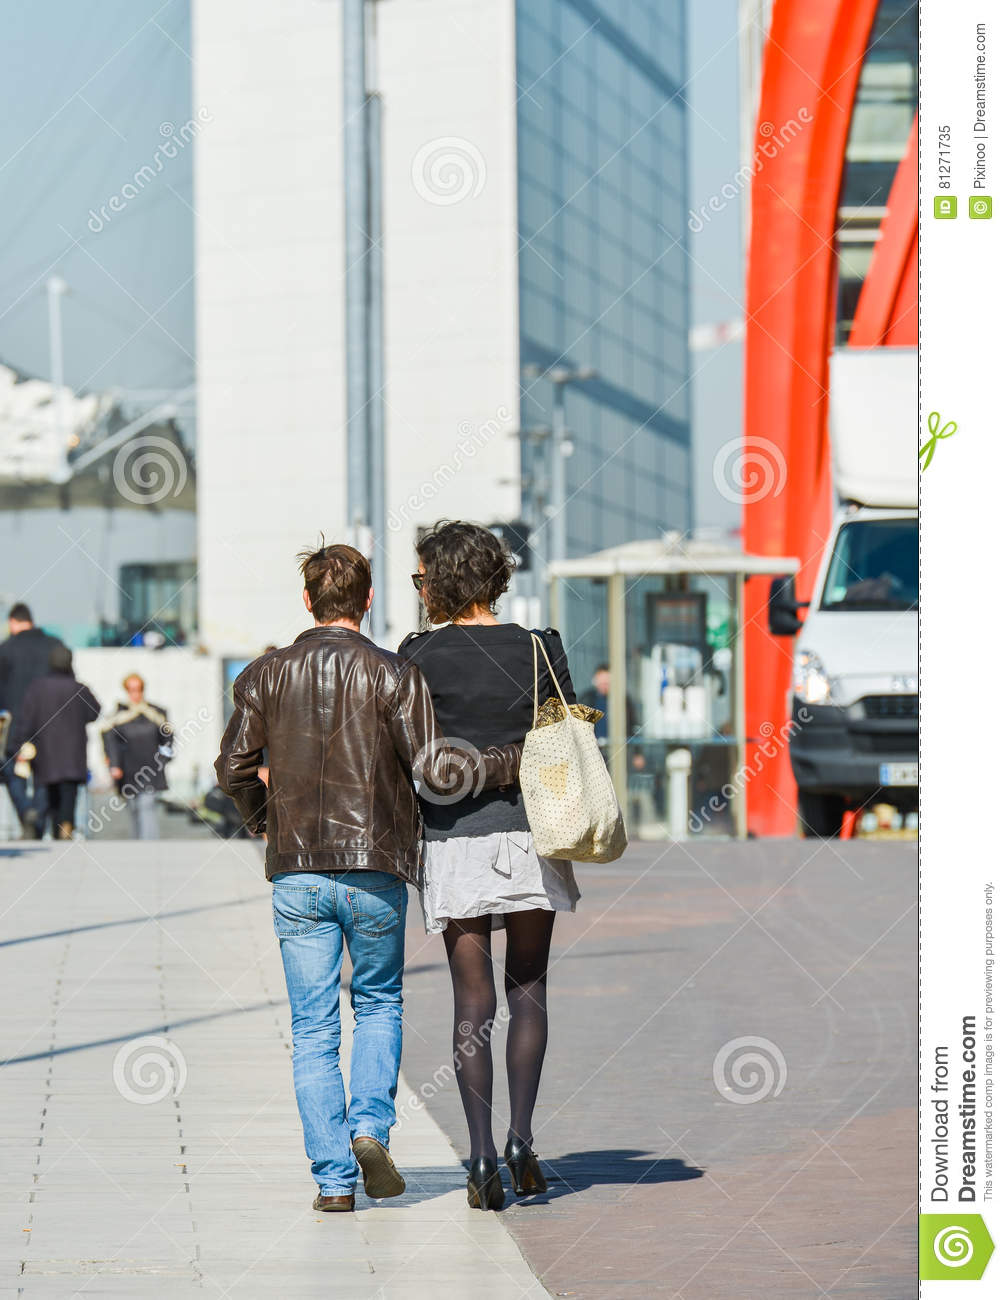 La defense, France- April 10, 2014: Stylish couple walking in a street. The man is wearing blue jean s and the woman short grey sk